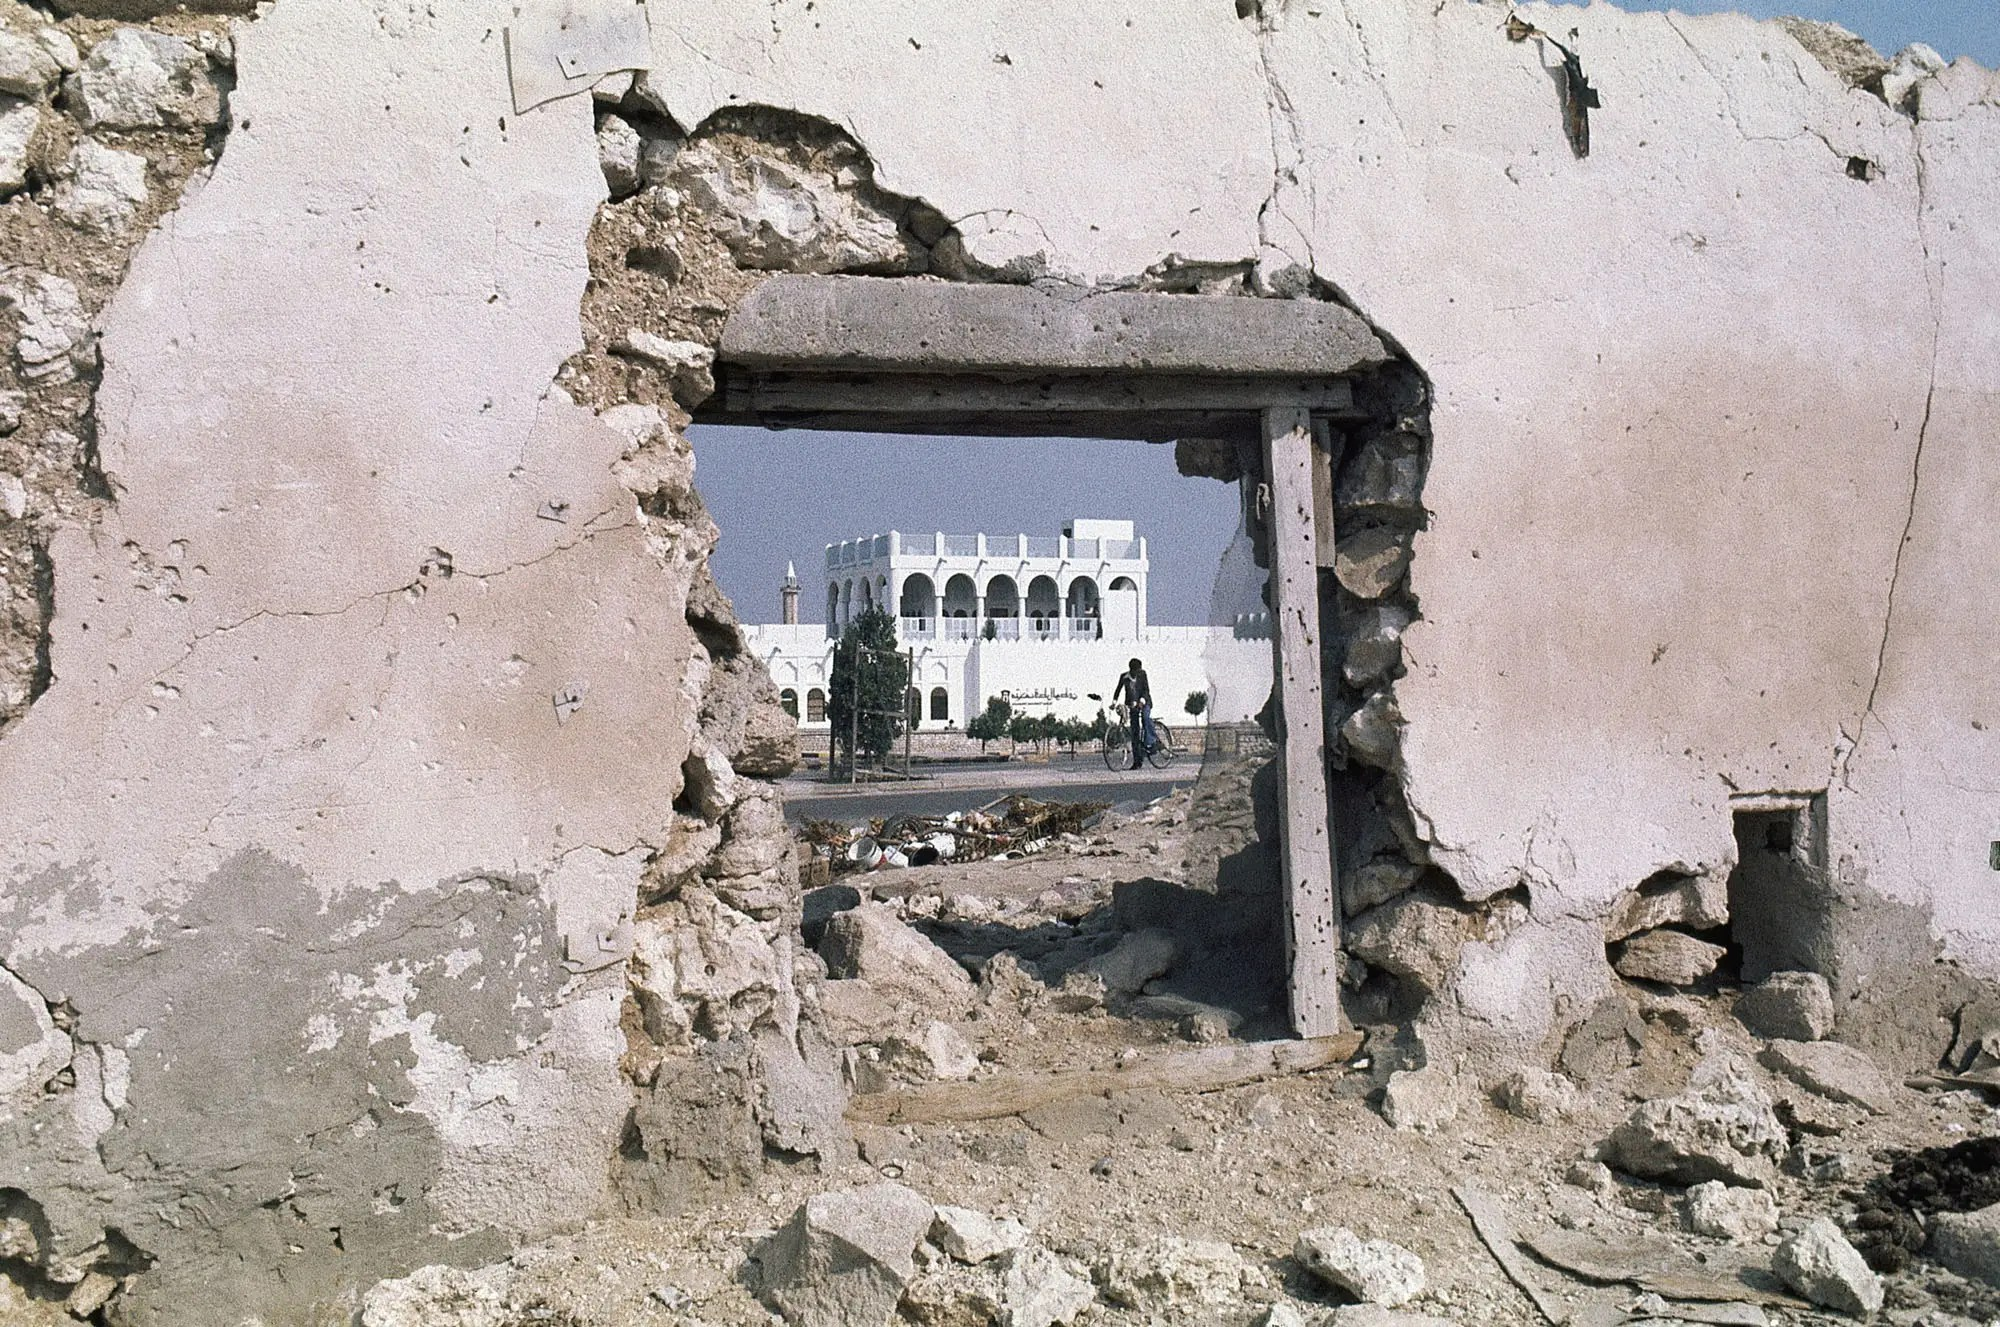 THEN: When it was first built in 1975, the Qatar National Museum in Doha was quite a big deal. Here it is in 1977, framed by a part of the crumbling old city.